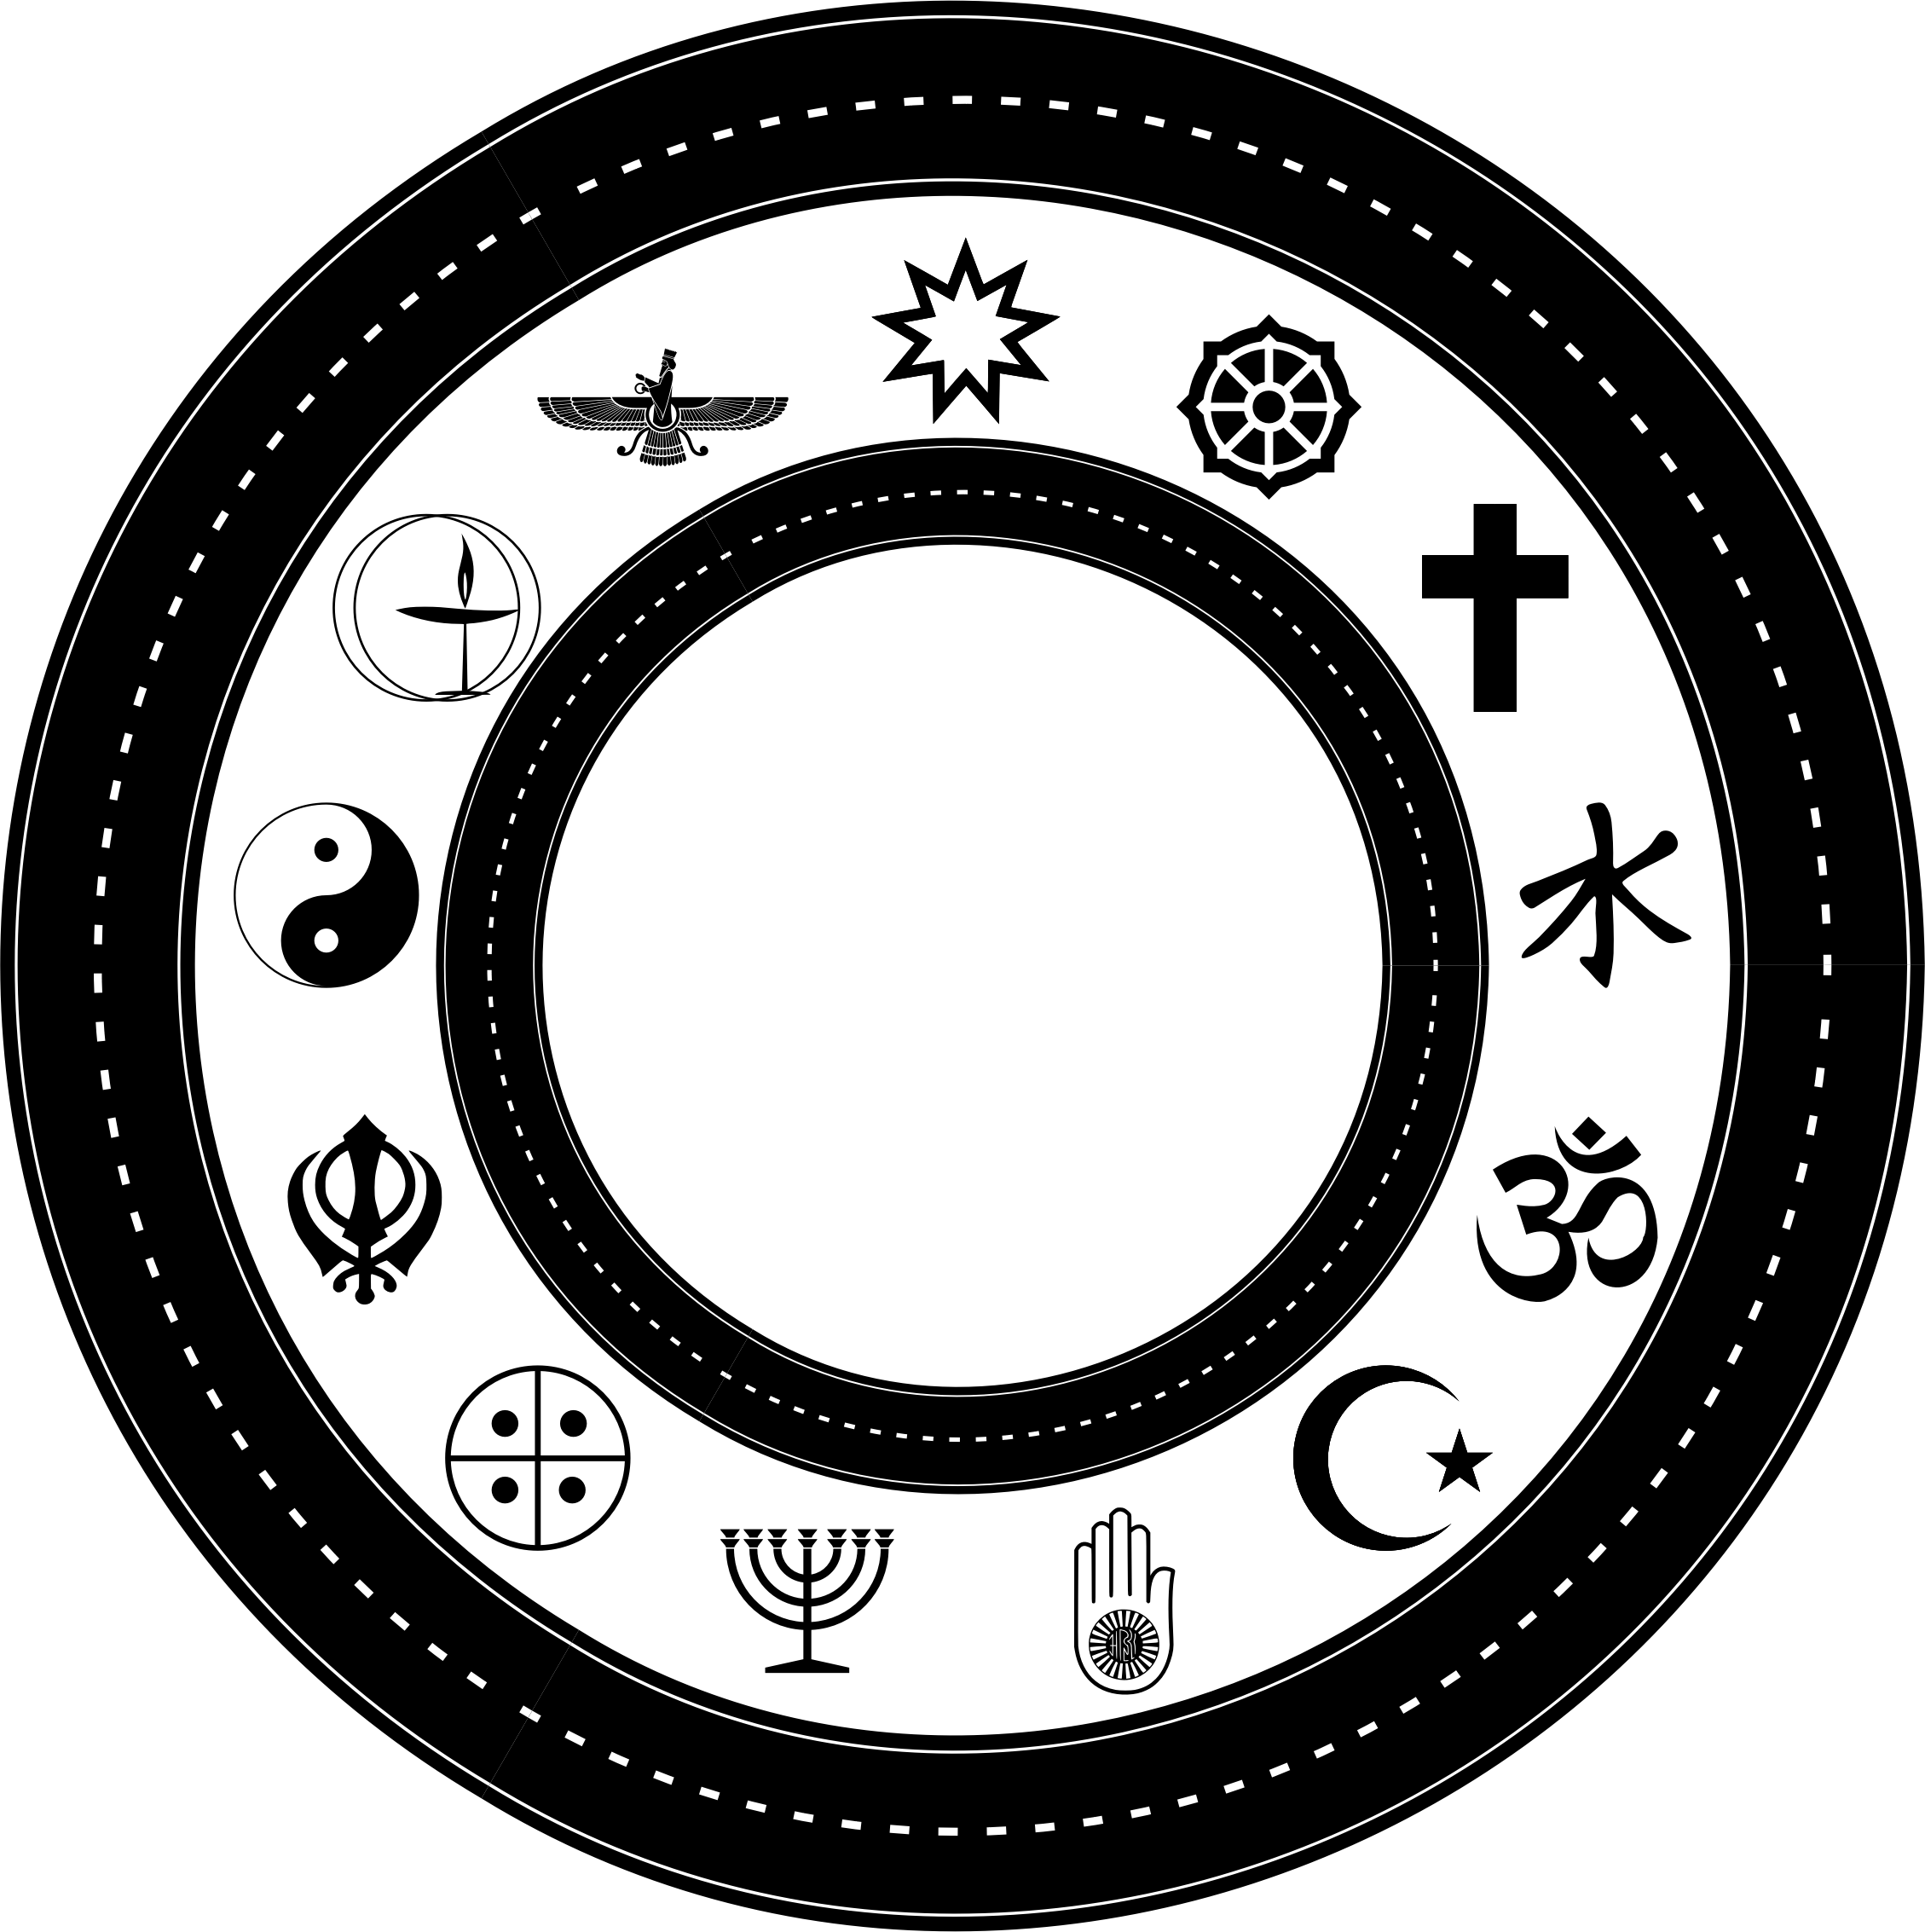 banner black and white library Life clipart circle life. Free on dumielauxepices net.